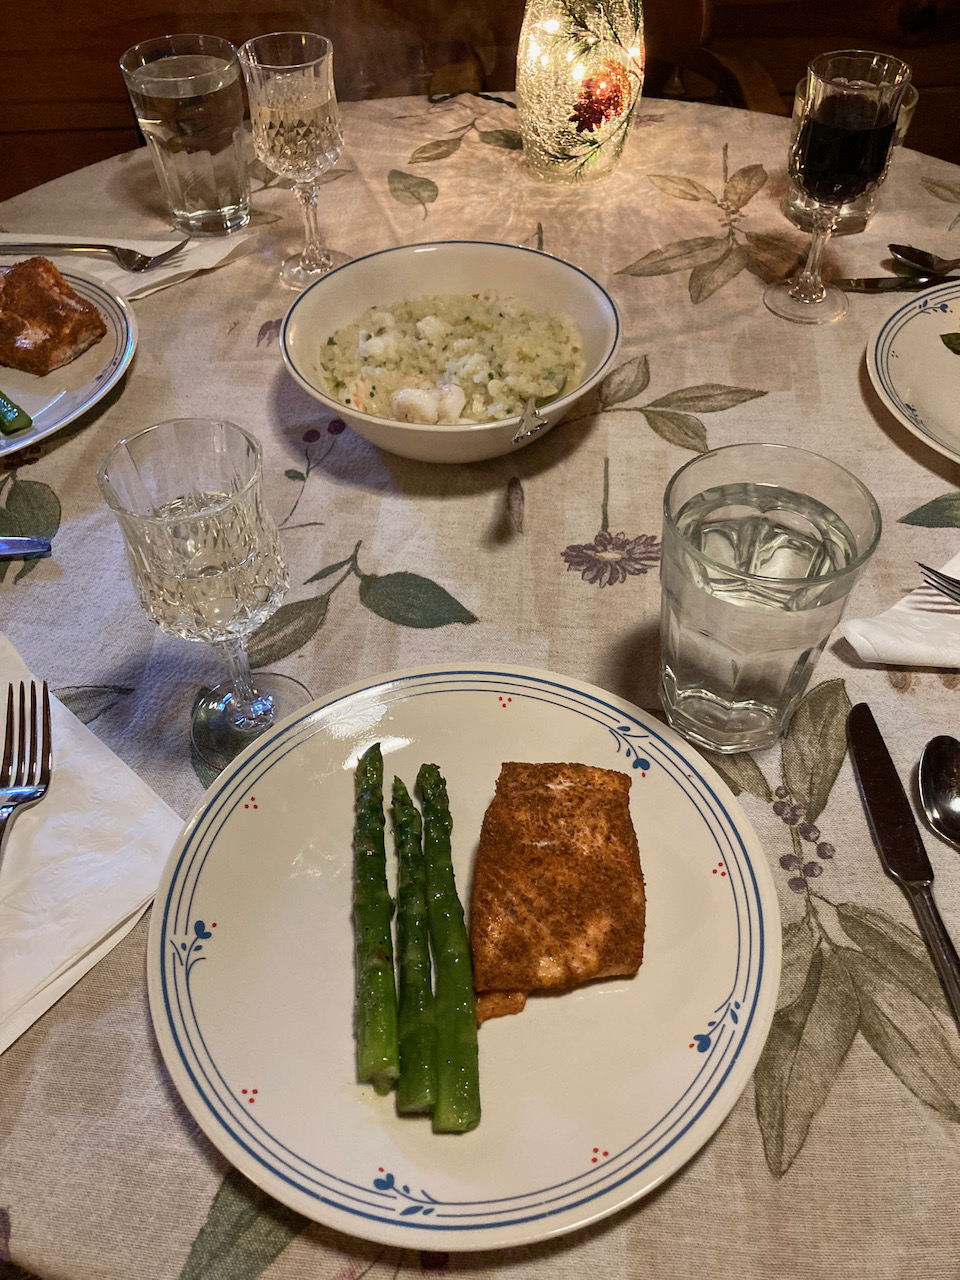 Plates of asparagus, salmon, and seafood risotto.